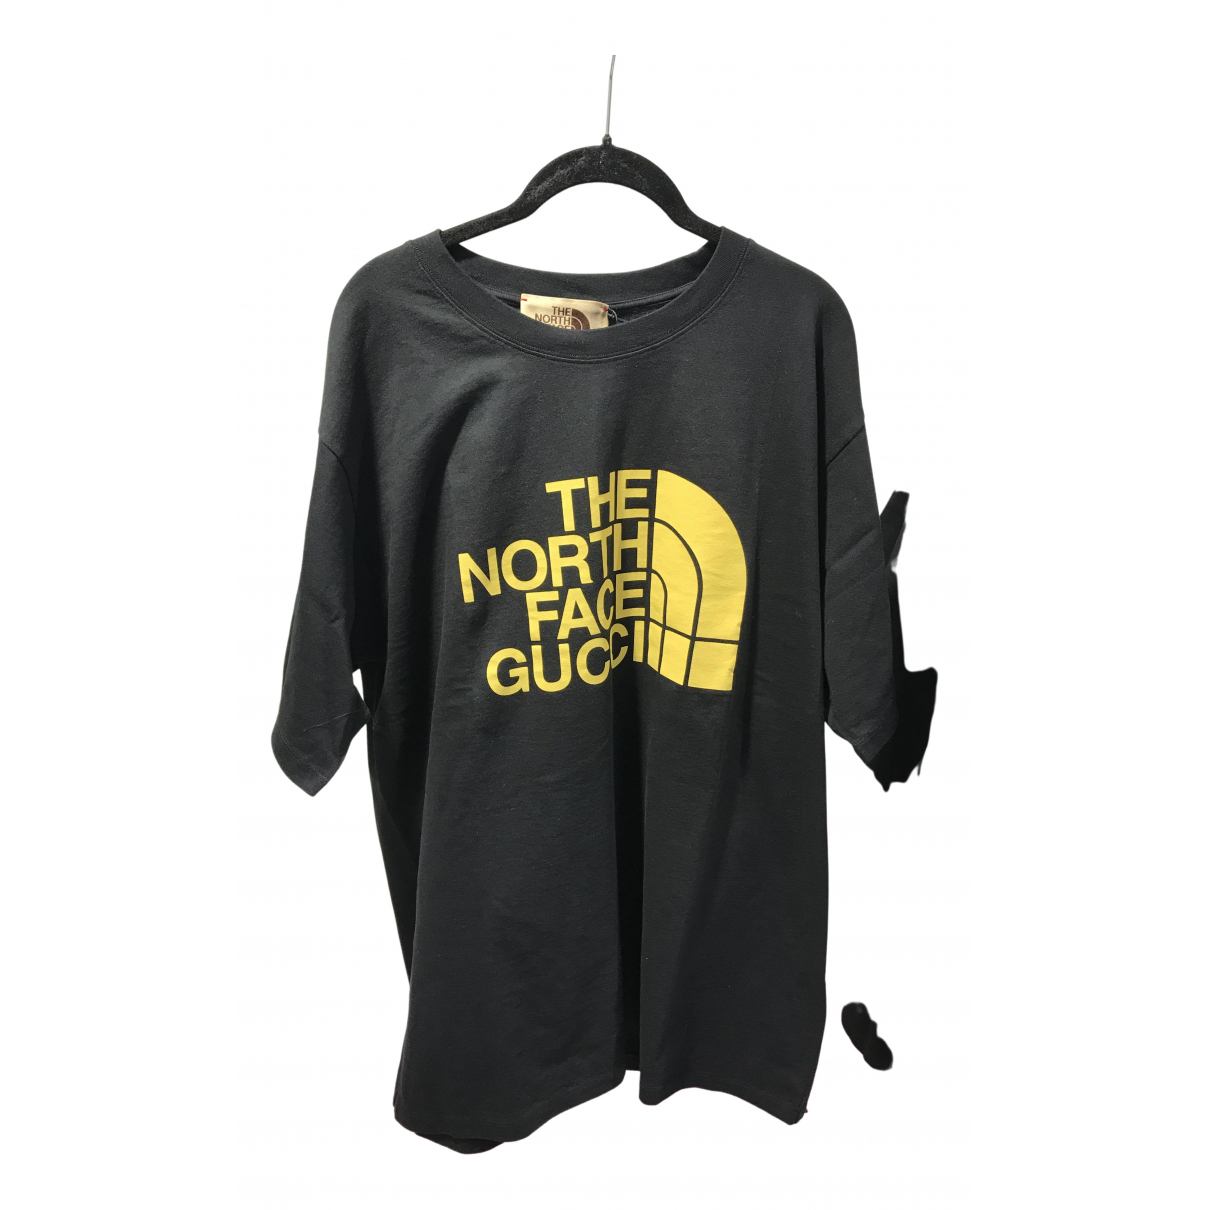 The North Face x Gucci T-shirt